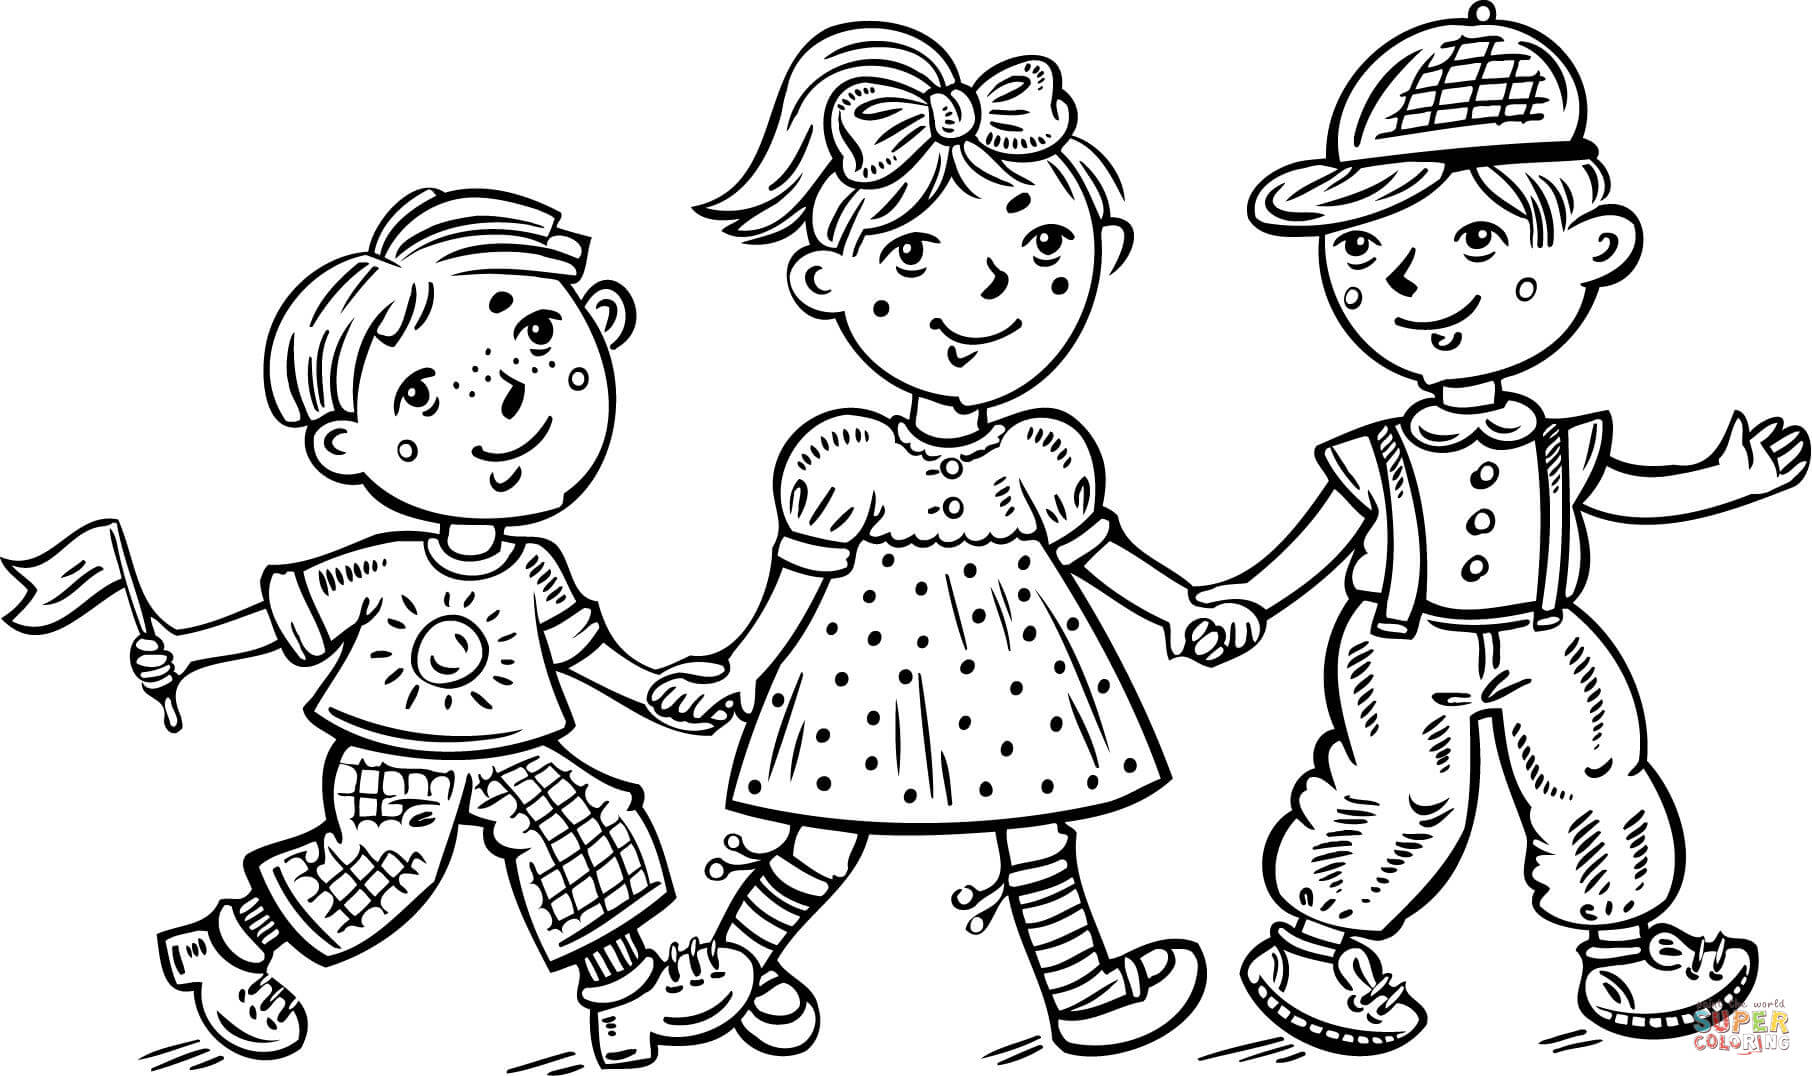 coloring pages girl and boy girl and boy with ball coloring page stock illustration pages boy girl coloring and